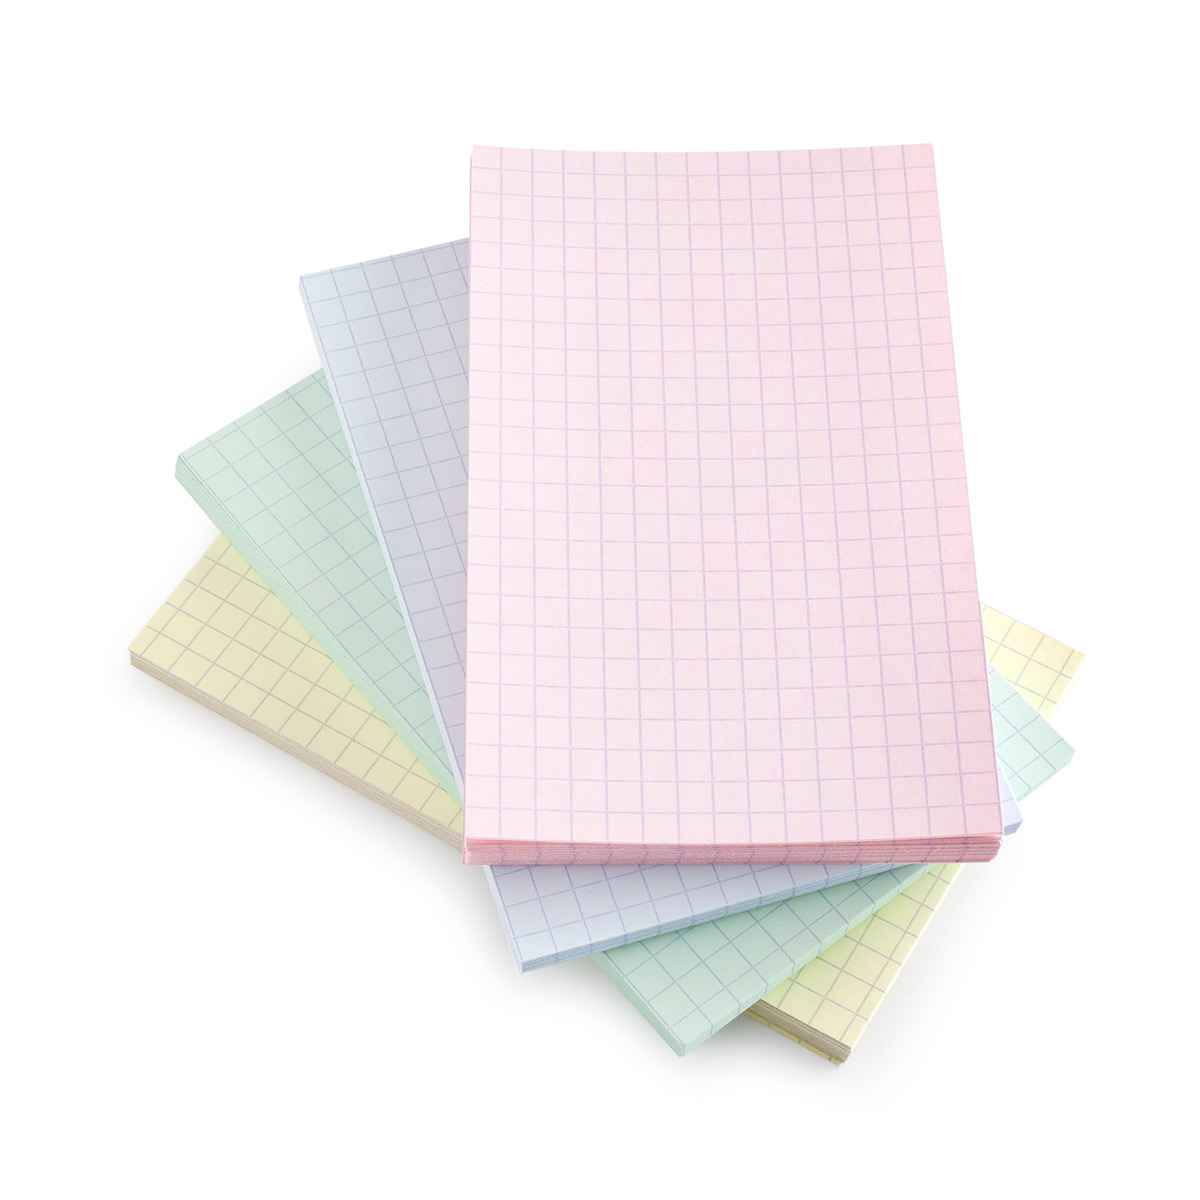 exacompta graph index cards  3 x 5  eco paper at vickerey